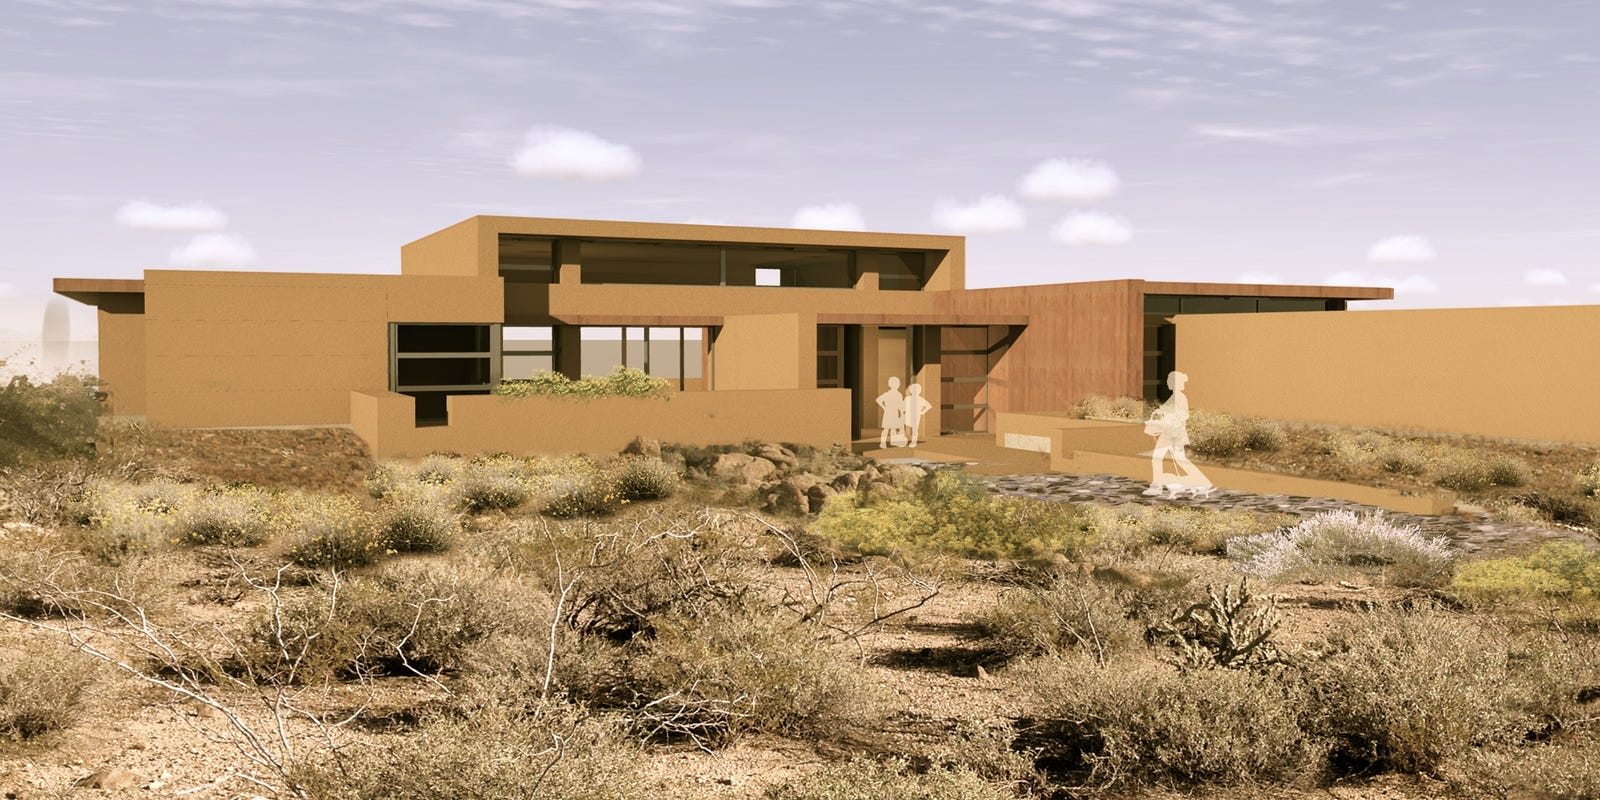 Frank Lloyd Wright Inspired Houses frank lloyd wright-inspired homes going up in cave creek